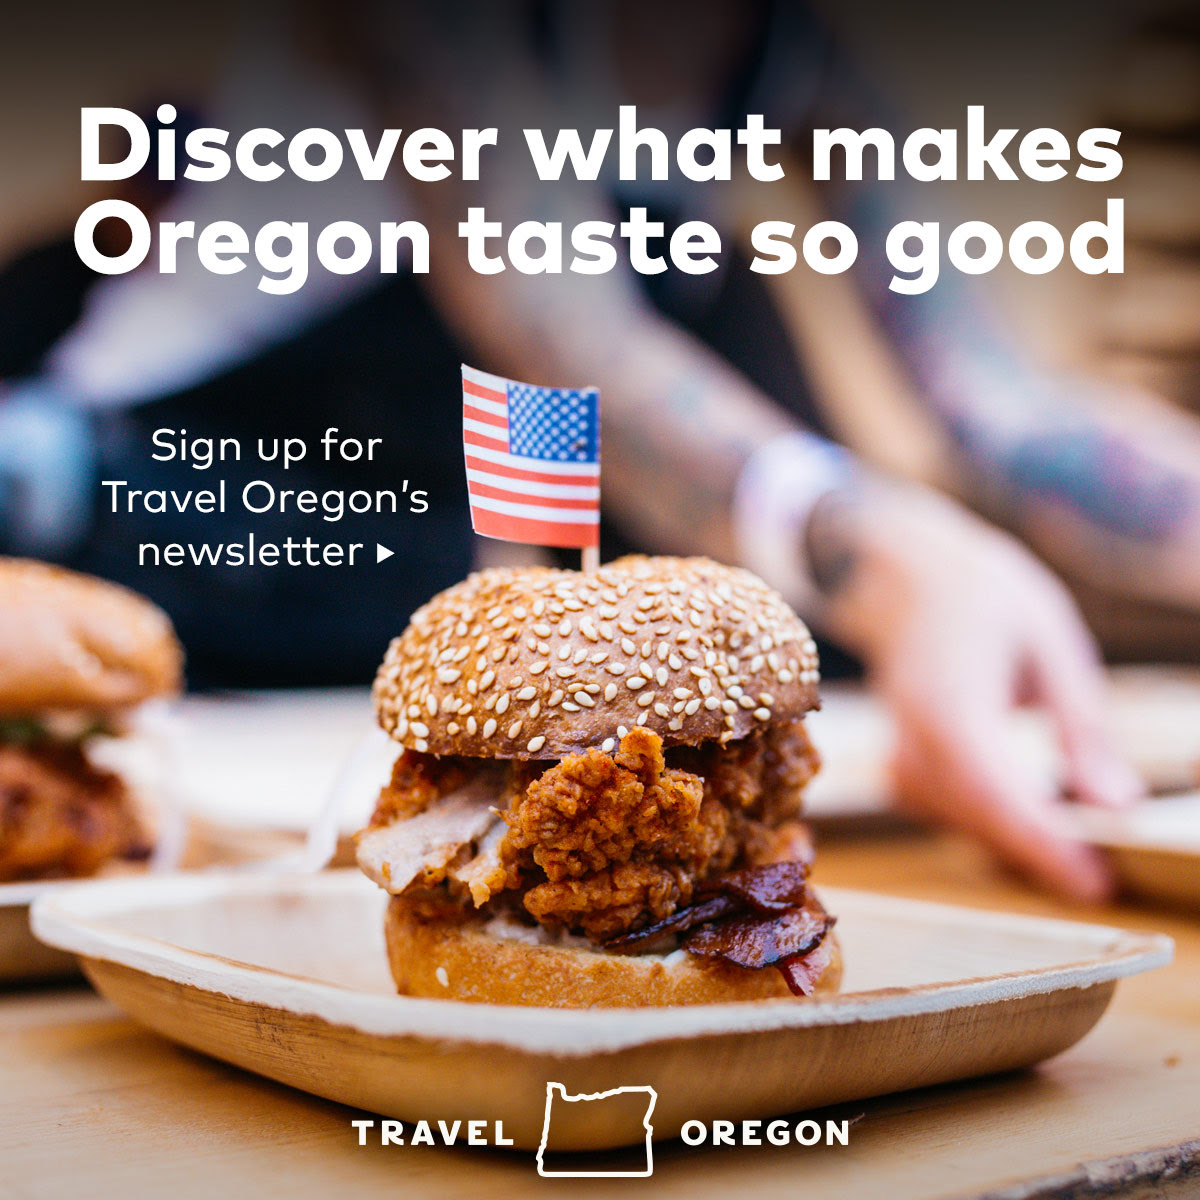 Sign up for Travel Oregon's Newsletter